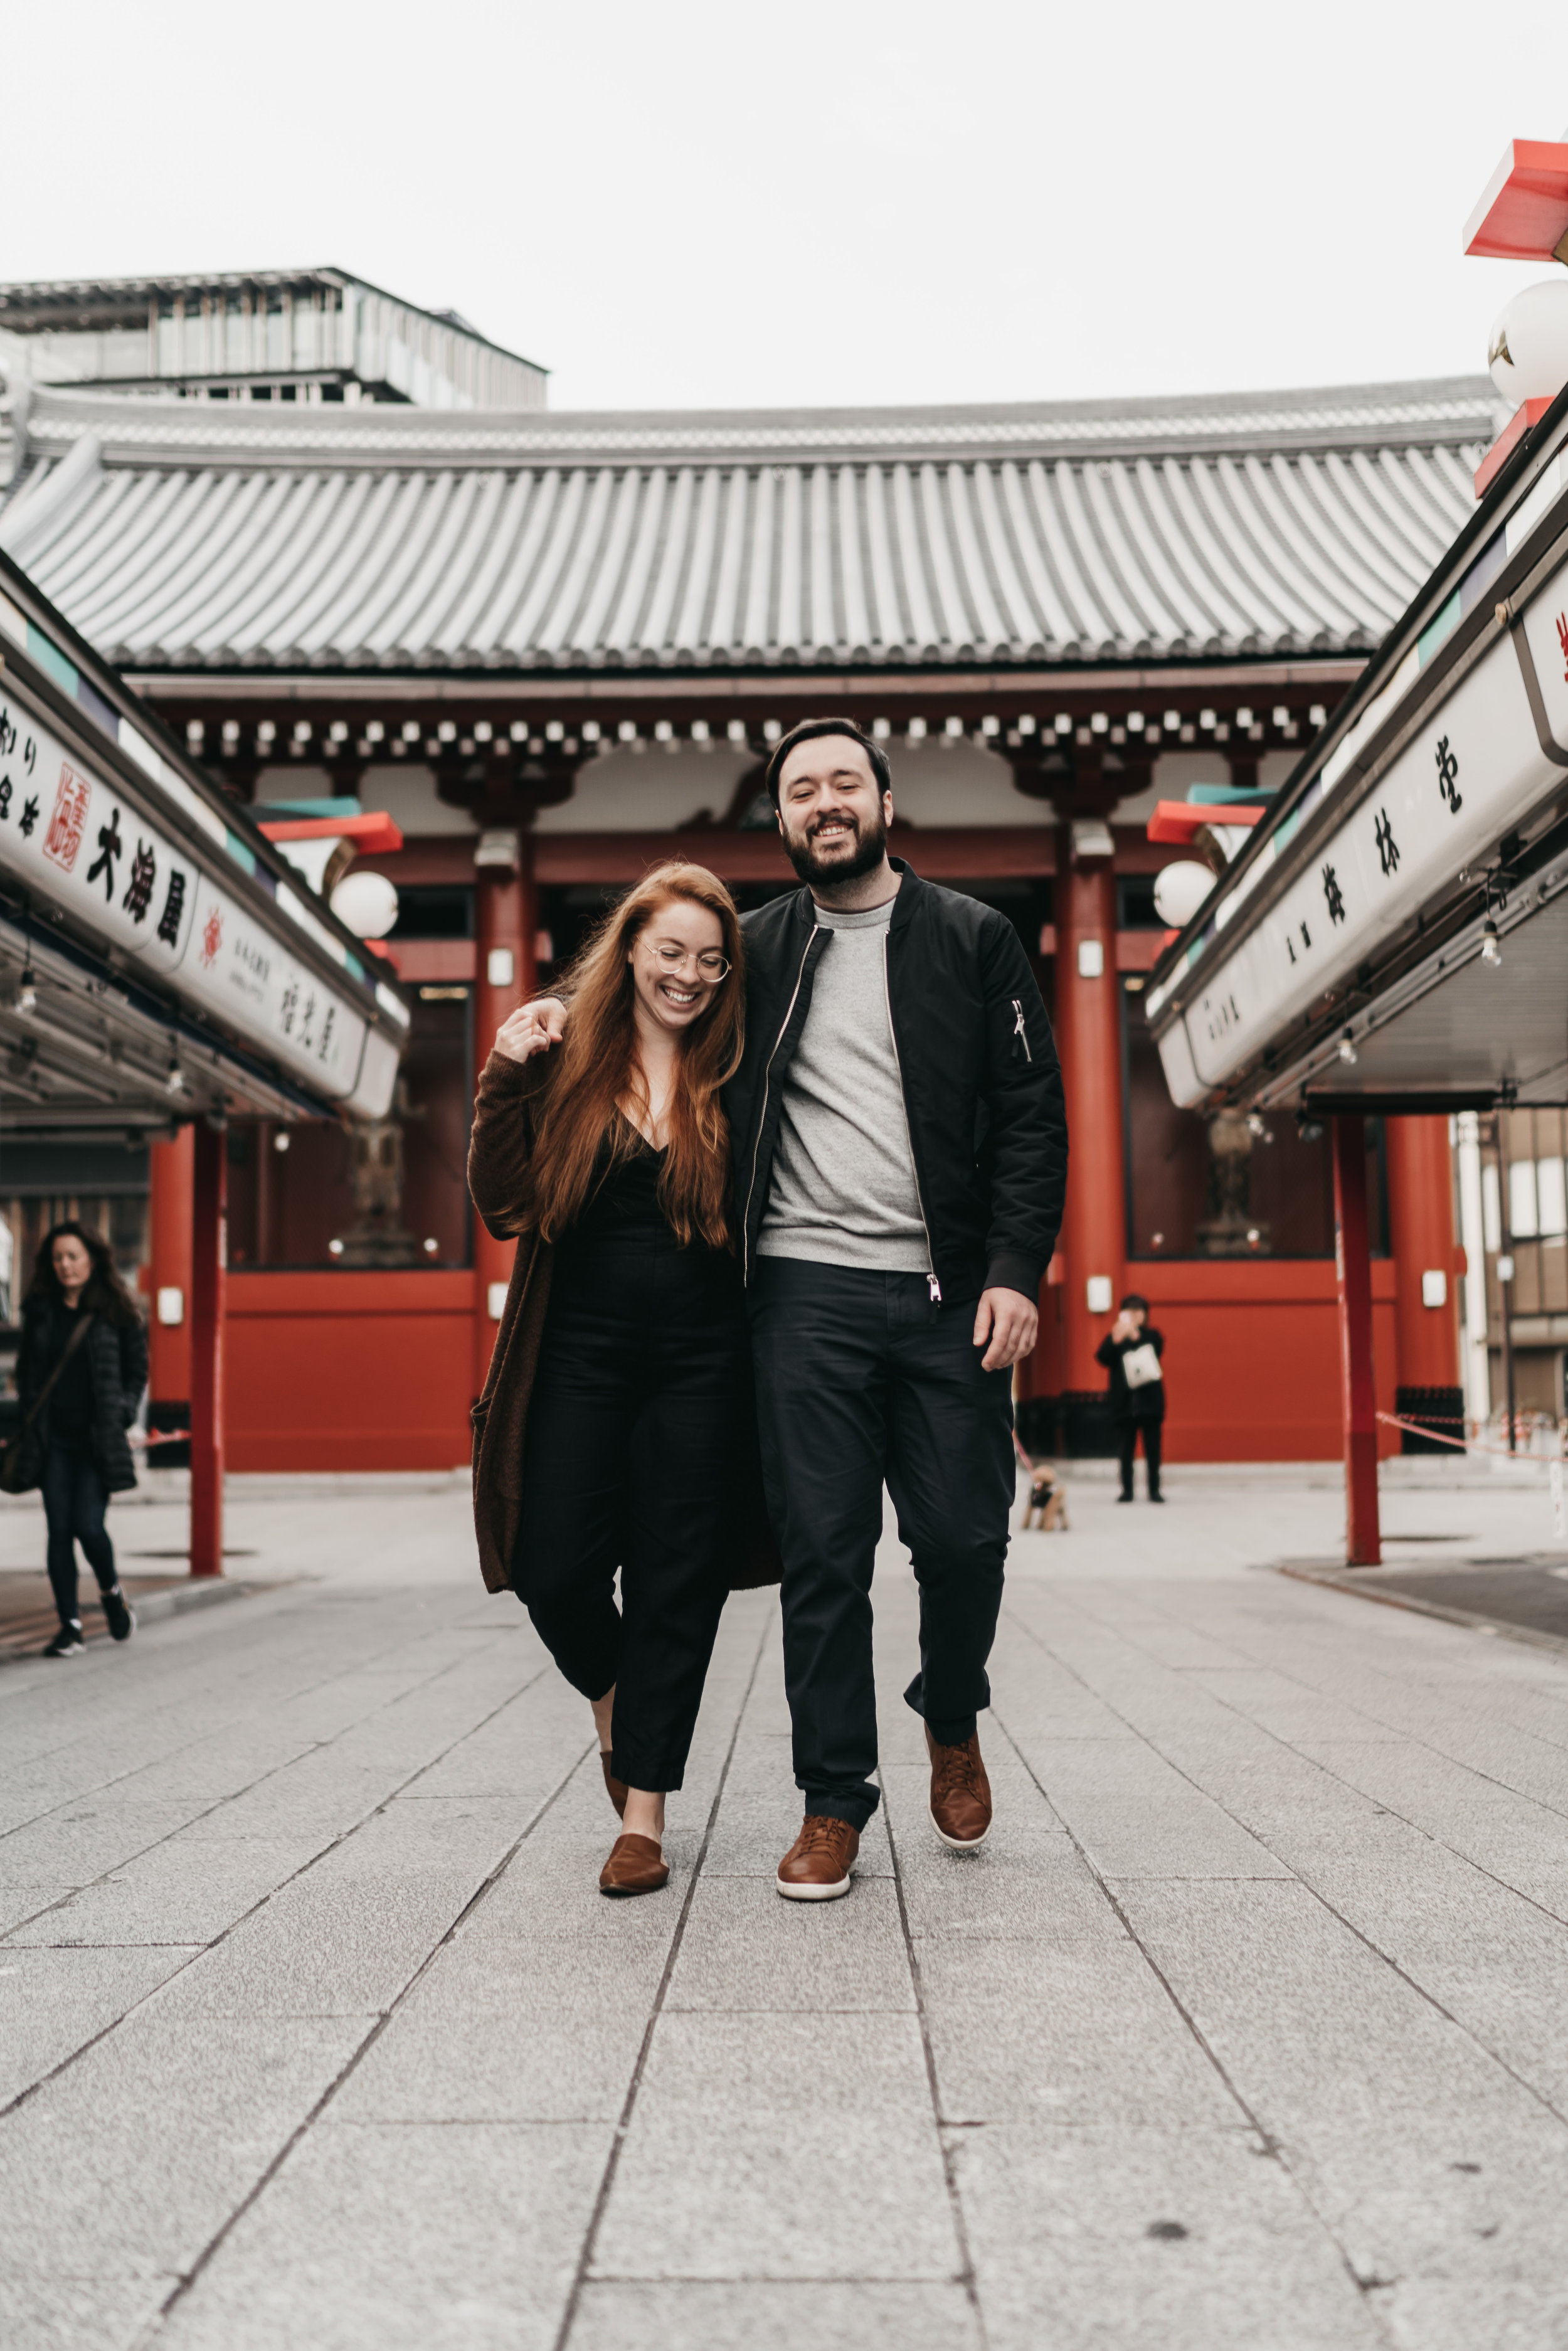 Spargers in Tokyo - Travel/Couple